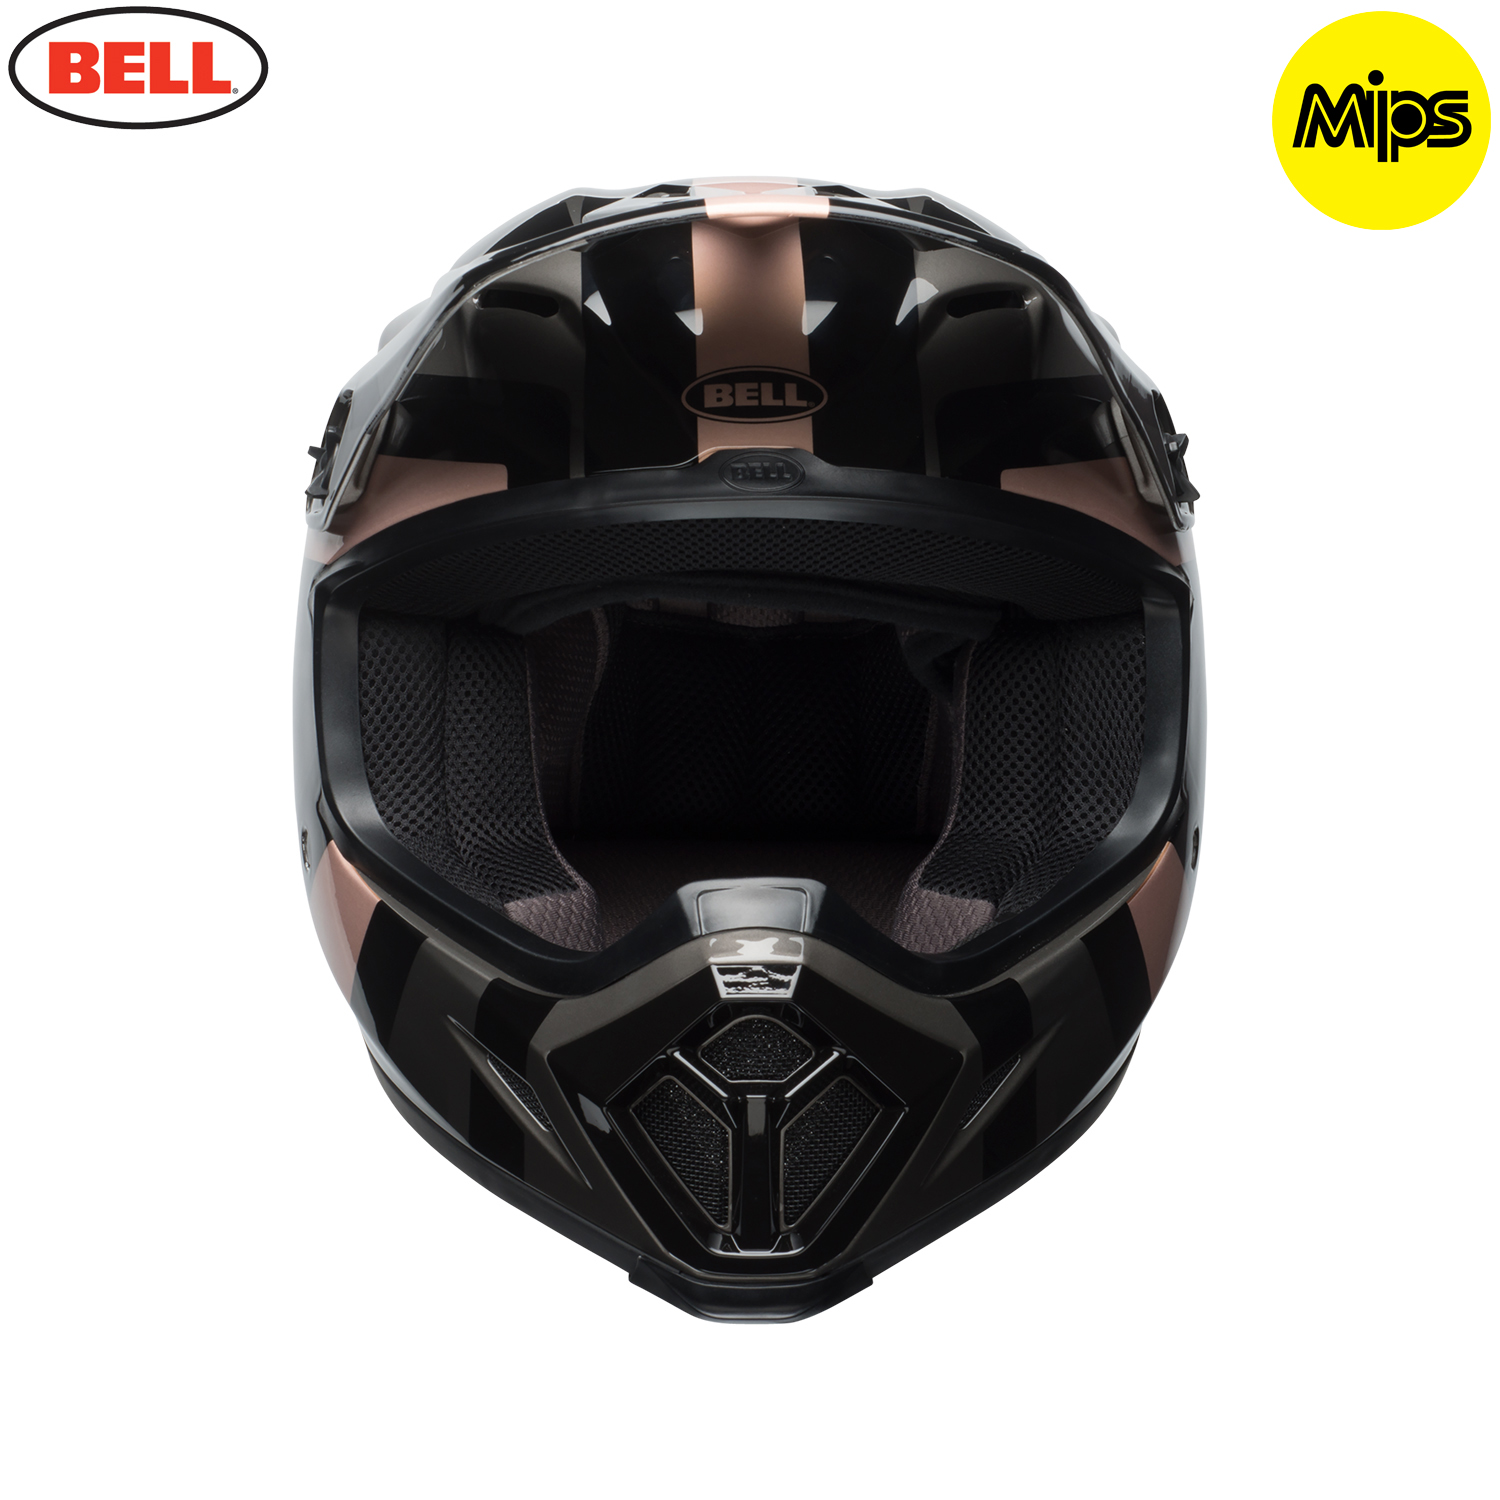 2018 bell mx 9 mips helmet marauder copper black. Black Bedroom Furniture Sets. Home Design Ideas